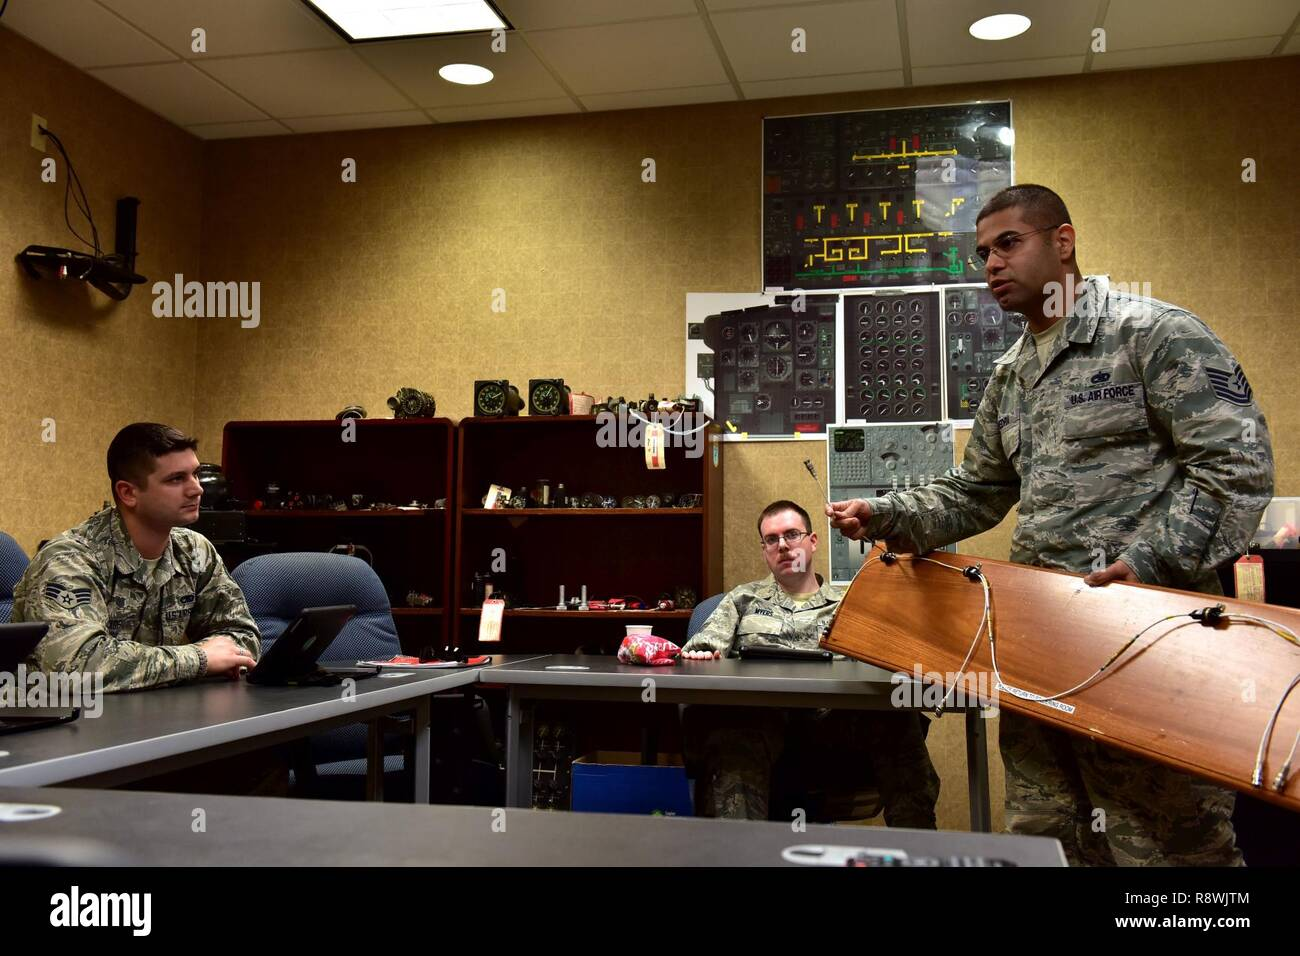 U.S. Air Force Tech. Sgt. Jose Piedra, standing, 373rd Training Squadron Detachment 4 production supervisor and instructor, discusses the importance of the 1553B databus backbone cable for the C-130J to his students Feb. 23, 2017 at the Center of Excellence on Little Rock Air Force Base, Ark.  The cable transfers critical information between the computer systems throughout the aircraft and the Airmen are responsible for the understanding how they work. - Stock Image